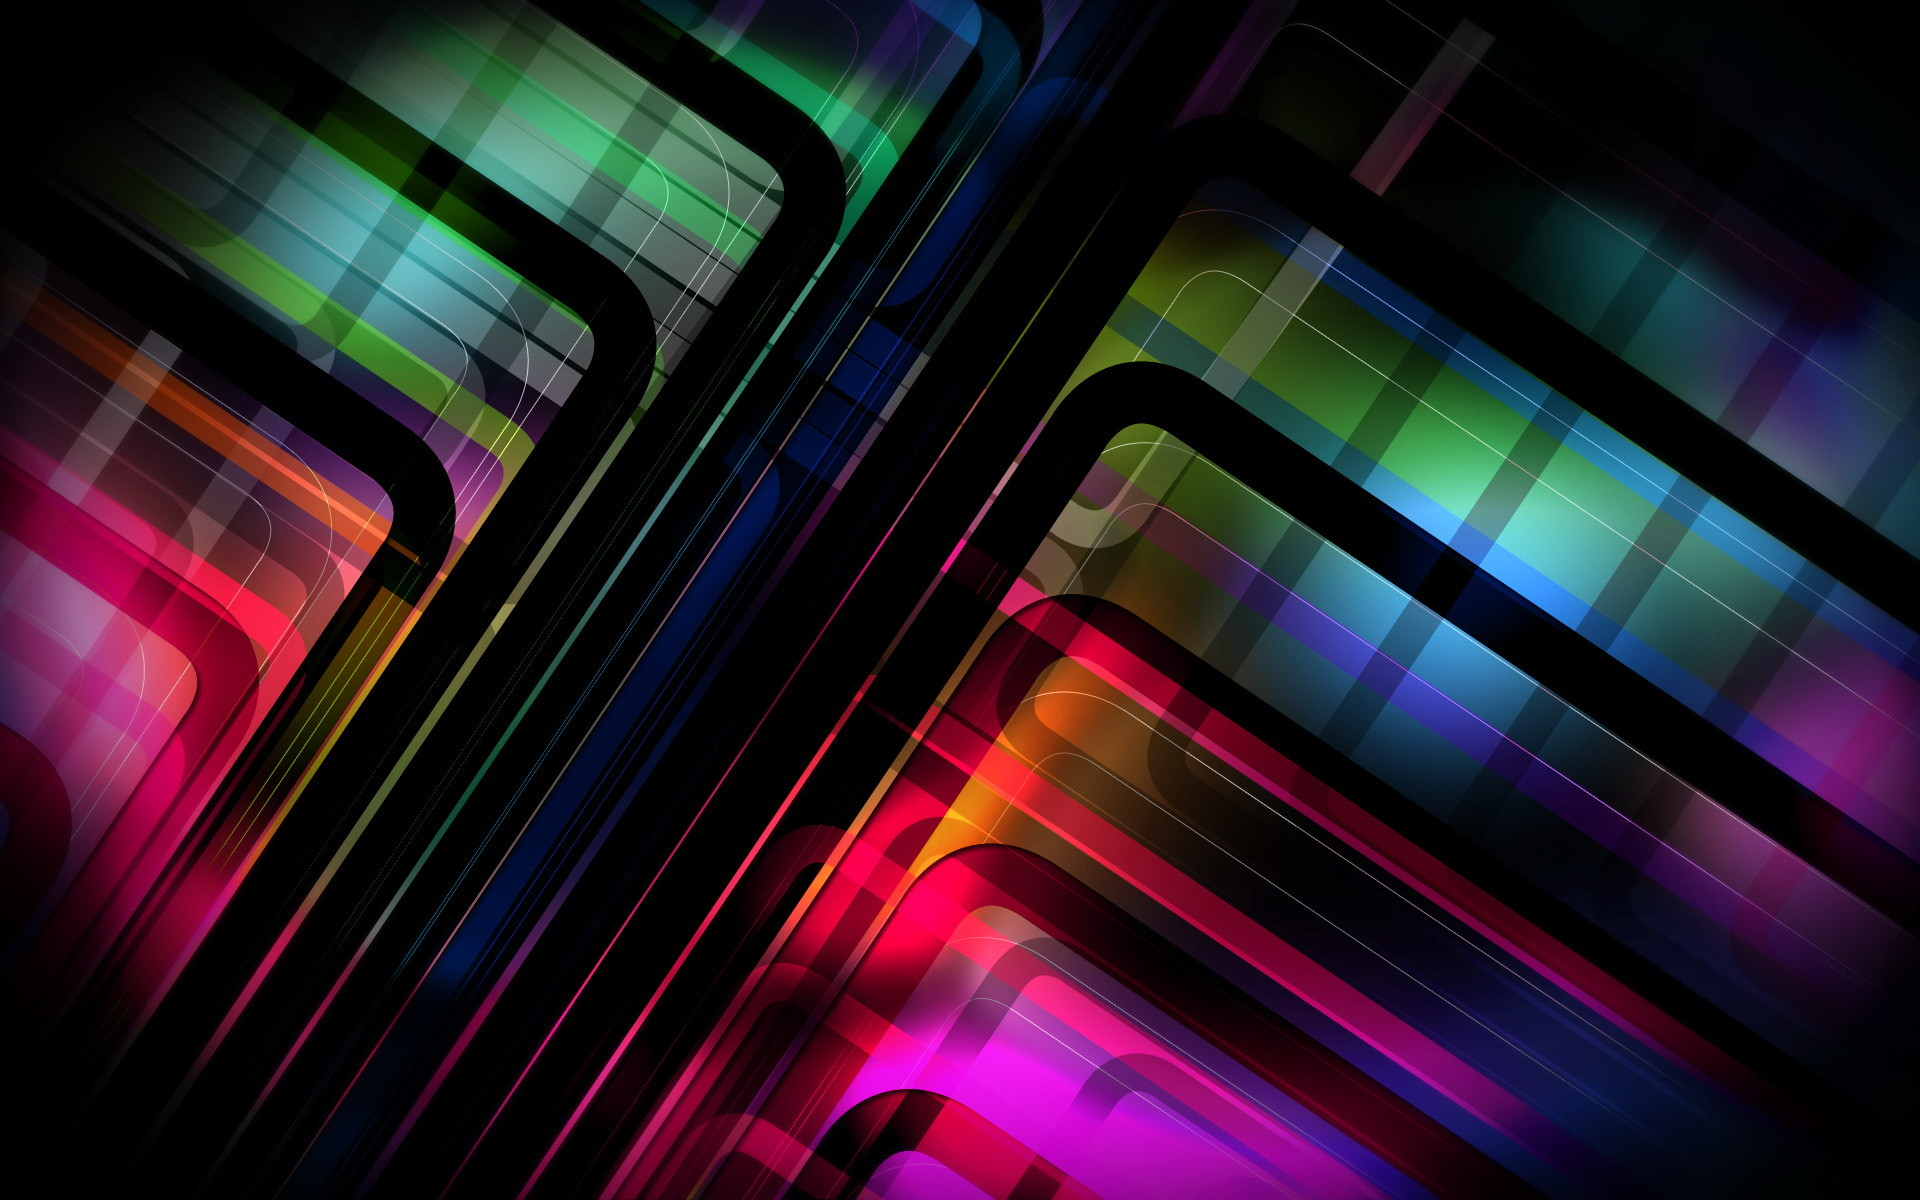 1920x1200 Free Colourful Old Abstract Wallpapers, Colourful Old Abstract Pictures,  Colourful Old Abstract Photos, Colourful Old Abstract wallpaper